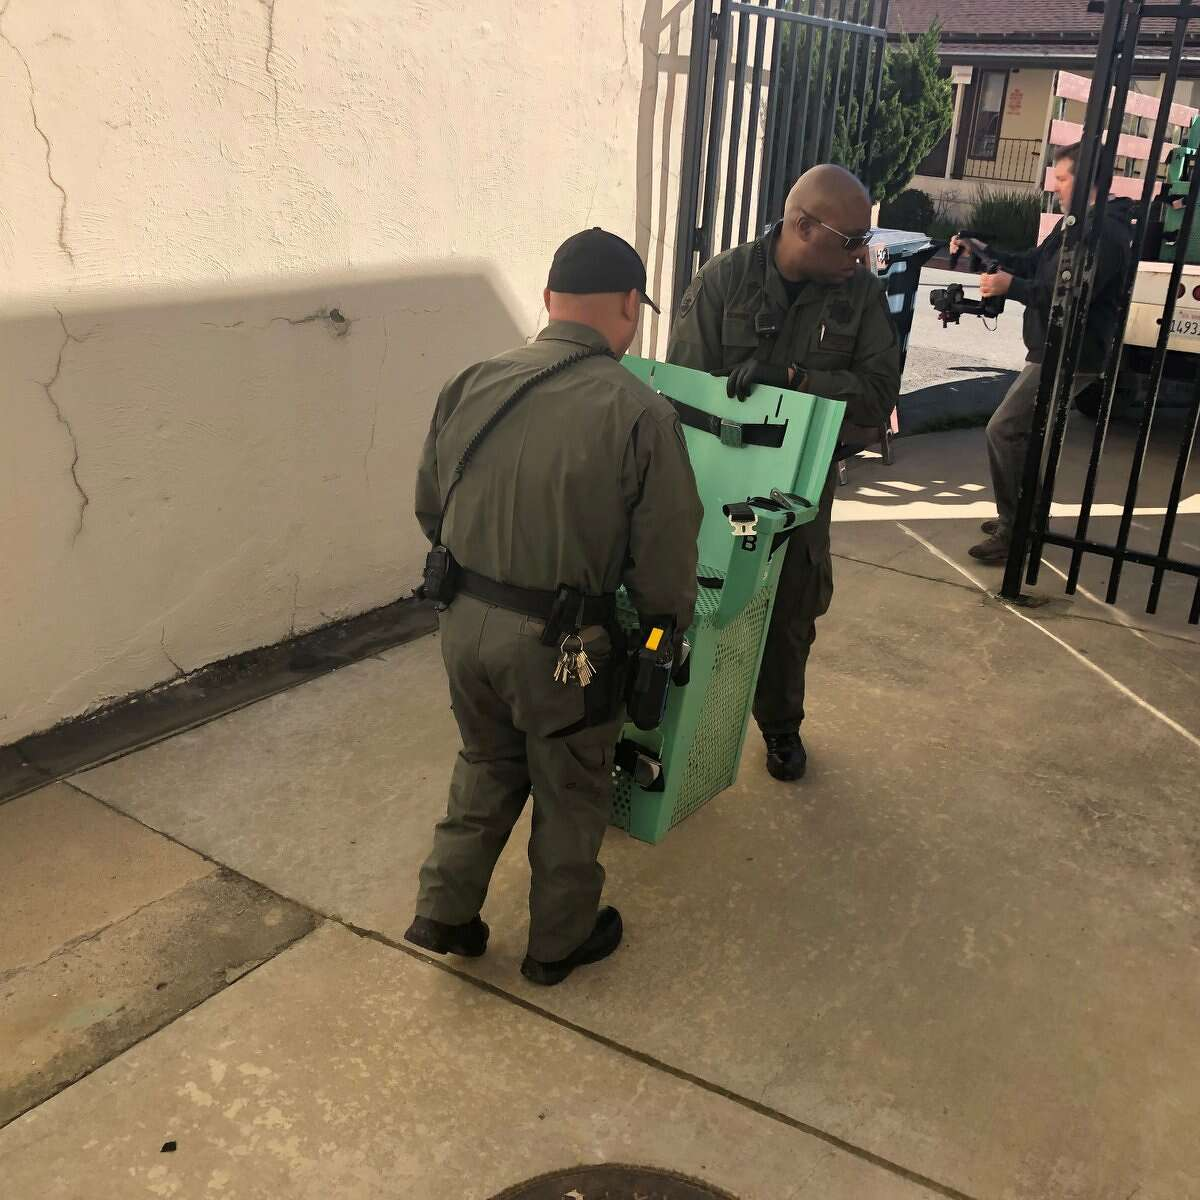 Photos show equipment being removed from the execution chamber at San Quentin after Governor Gavin Newsom announced a moratorium on executions on March 13, 2019.